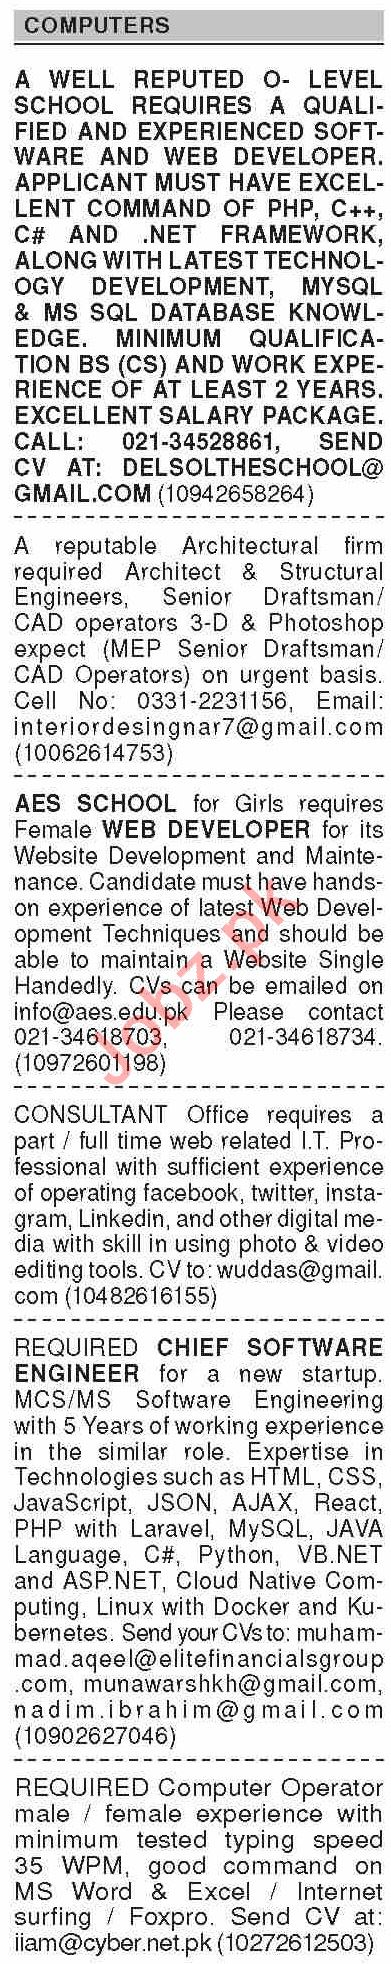 Dawn Sunday Classified Ads 28 Feb 2021 for Computer Staff